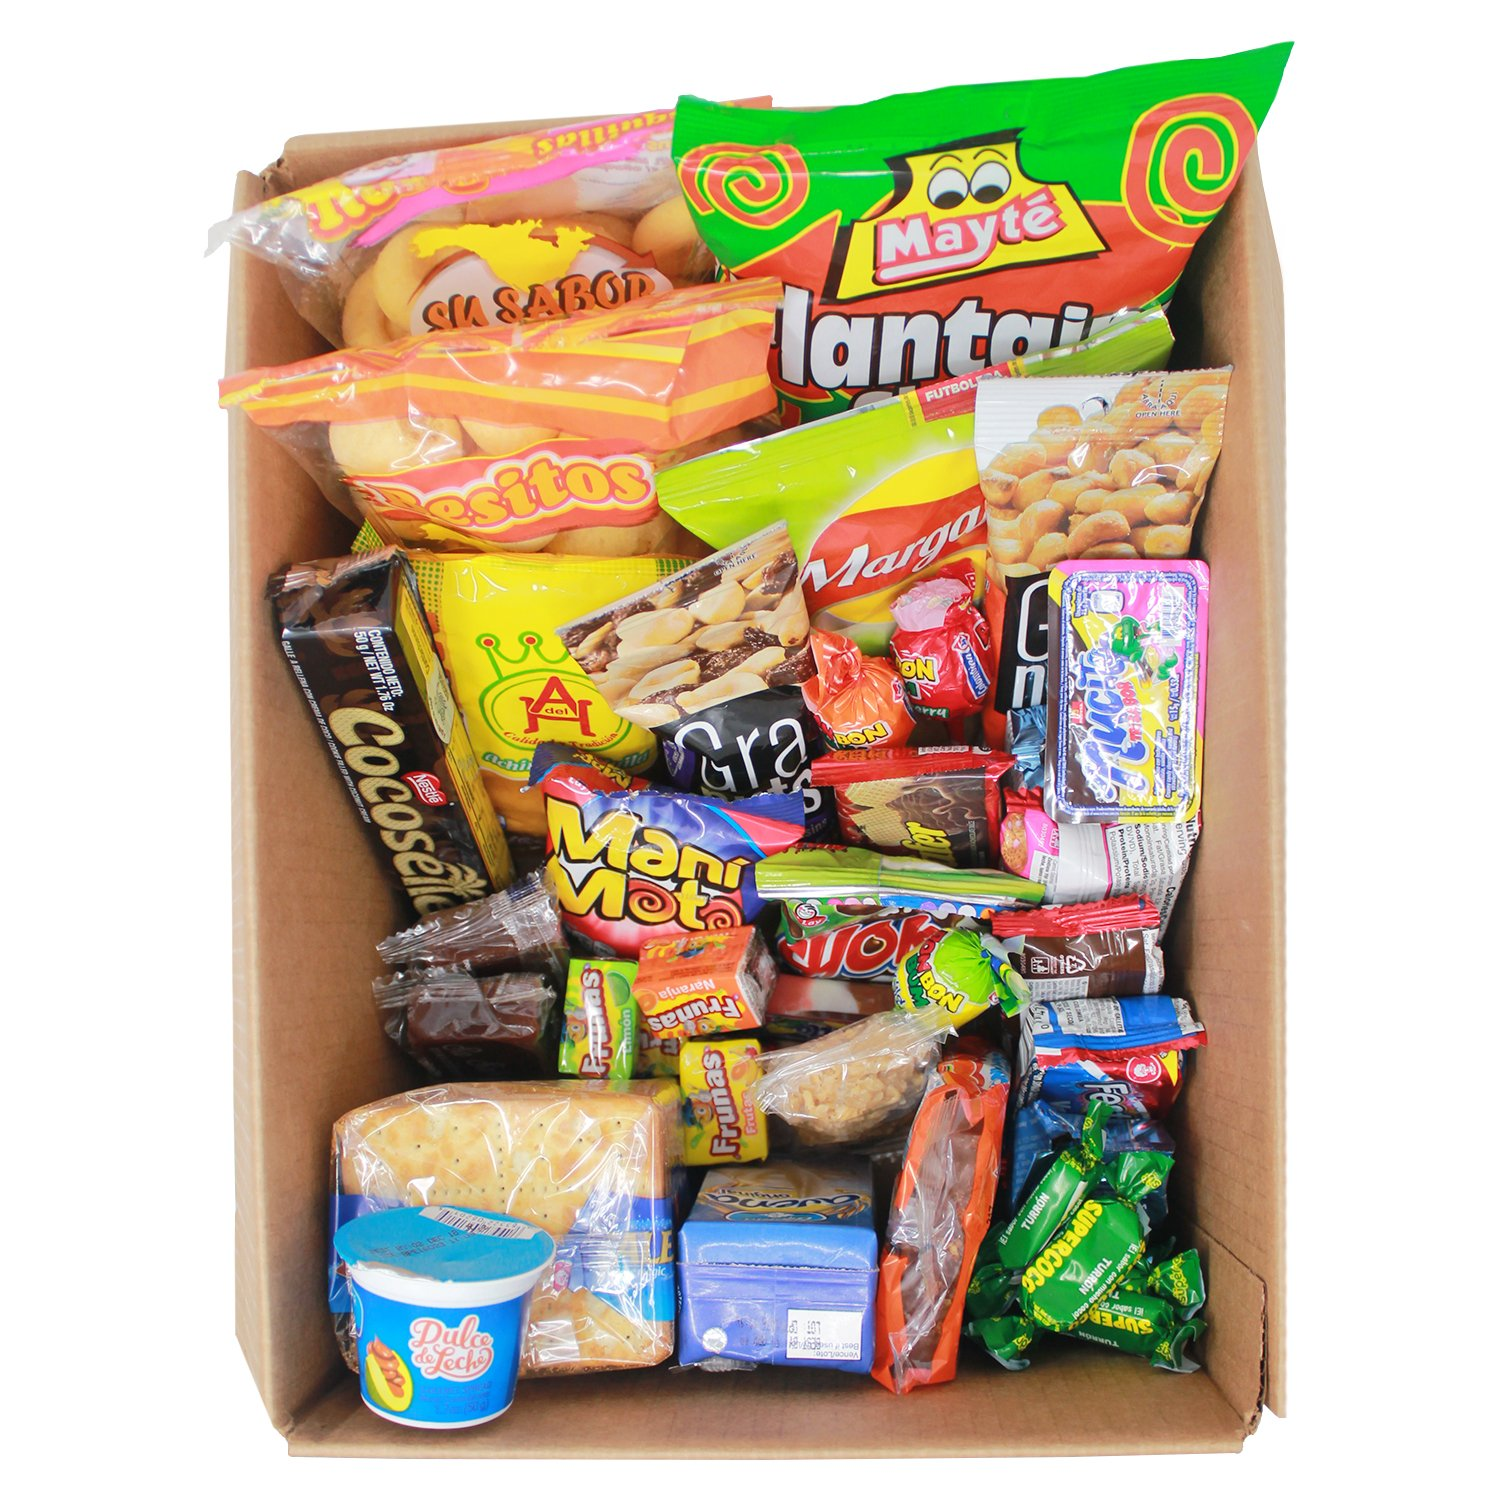 Colombian Snacks Sampler Box | Mecato Colombiano | Cookies, Chips & Candies Variety Pack | Snack Assortment Delight | 40 count / 25 different items | Weird ...